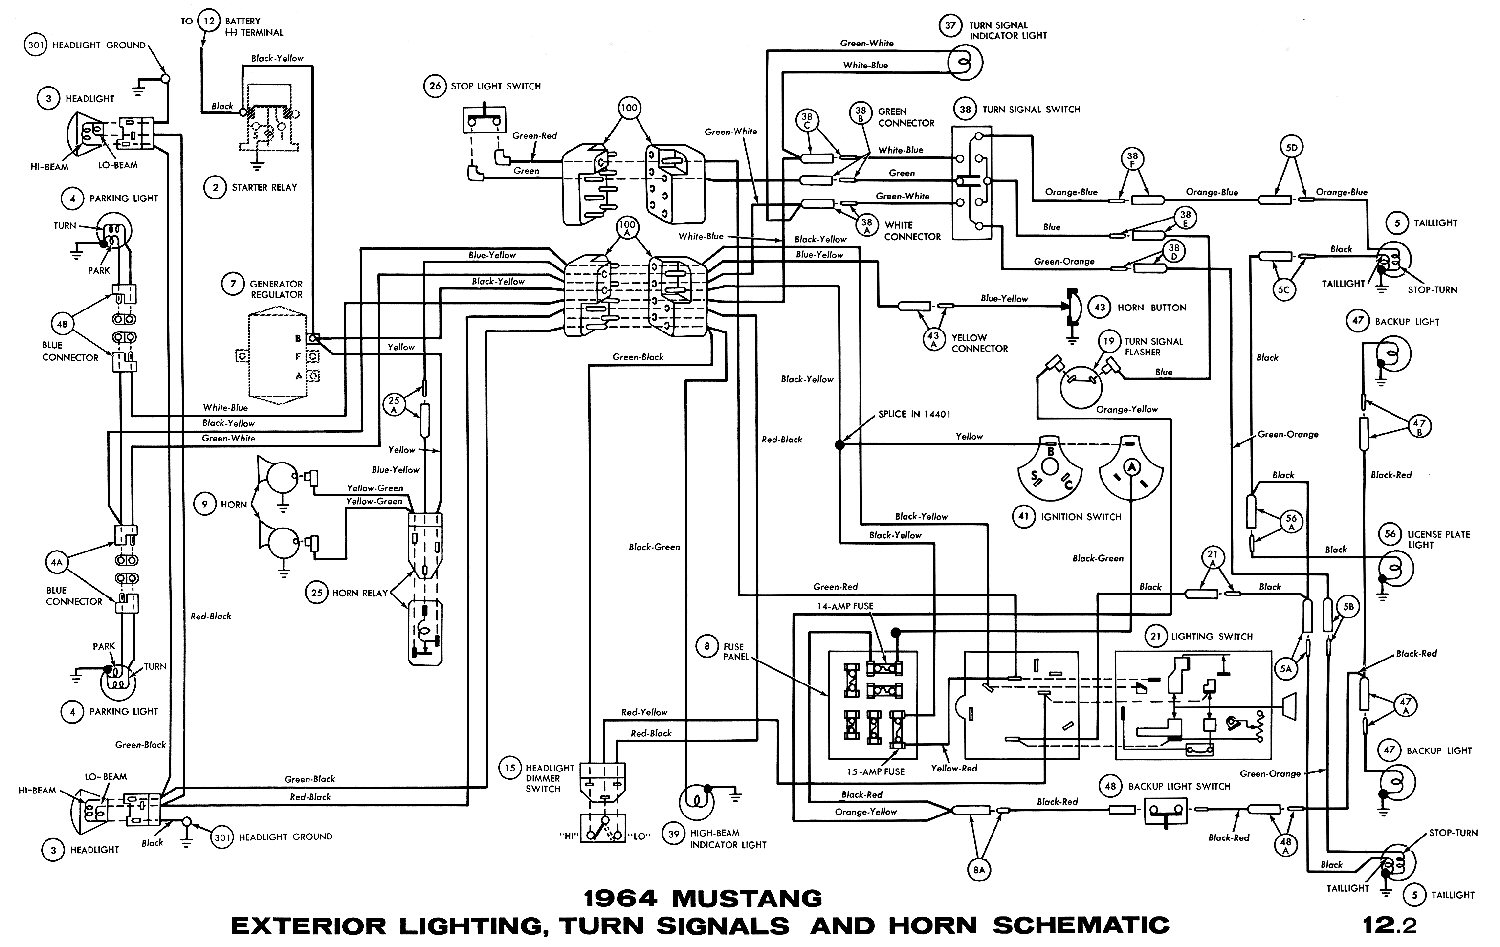 1964i 1964 mustang wiring diagrams average joe restoration 1965 mustang wiring diagram at bayanpartner.co